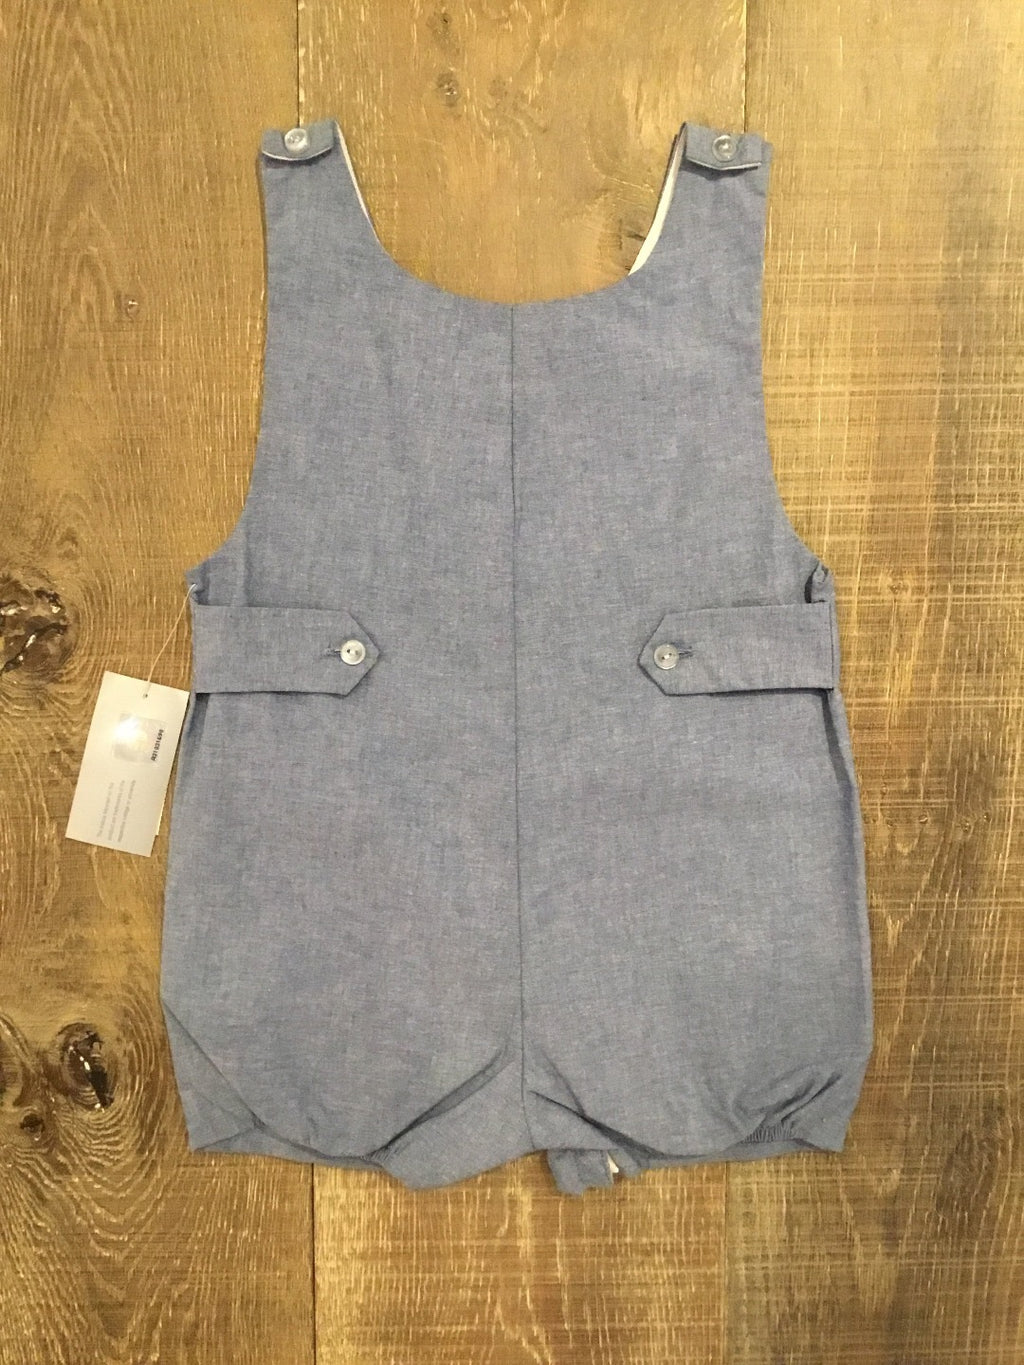 Smocked Denim Longhorn Shortall